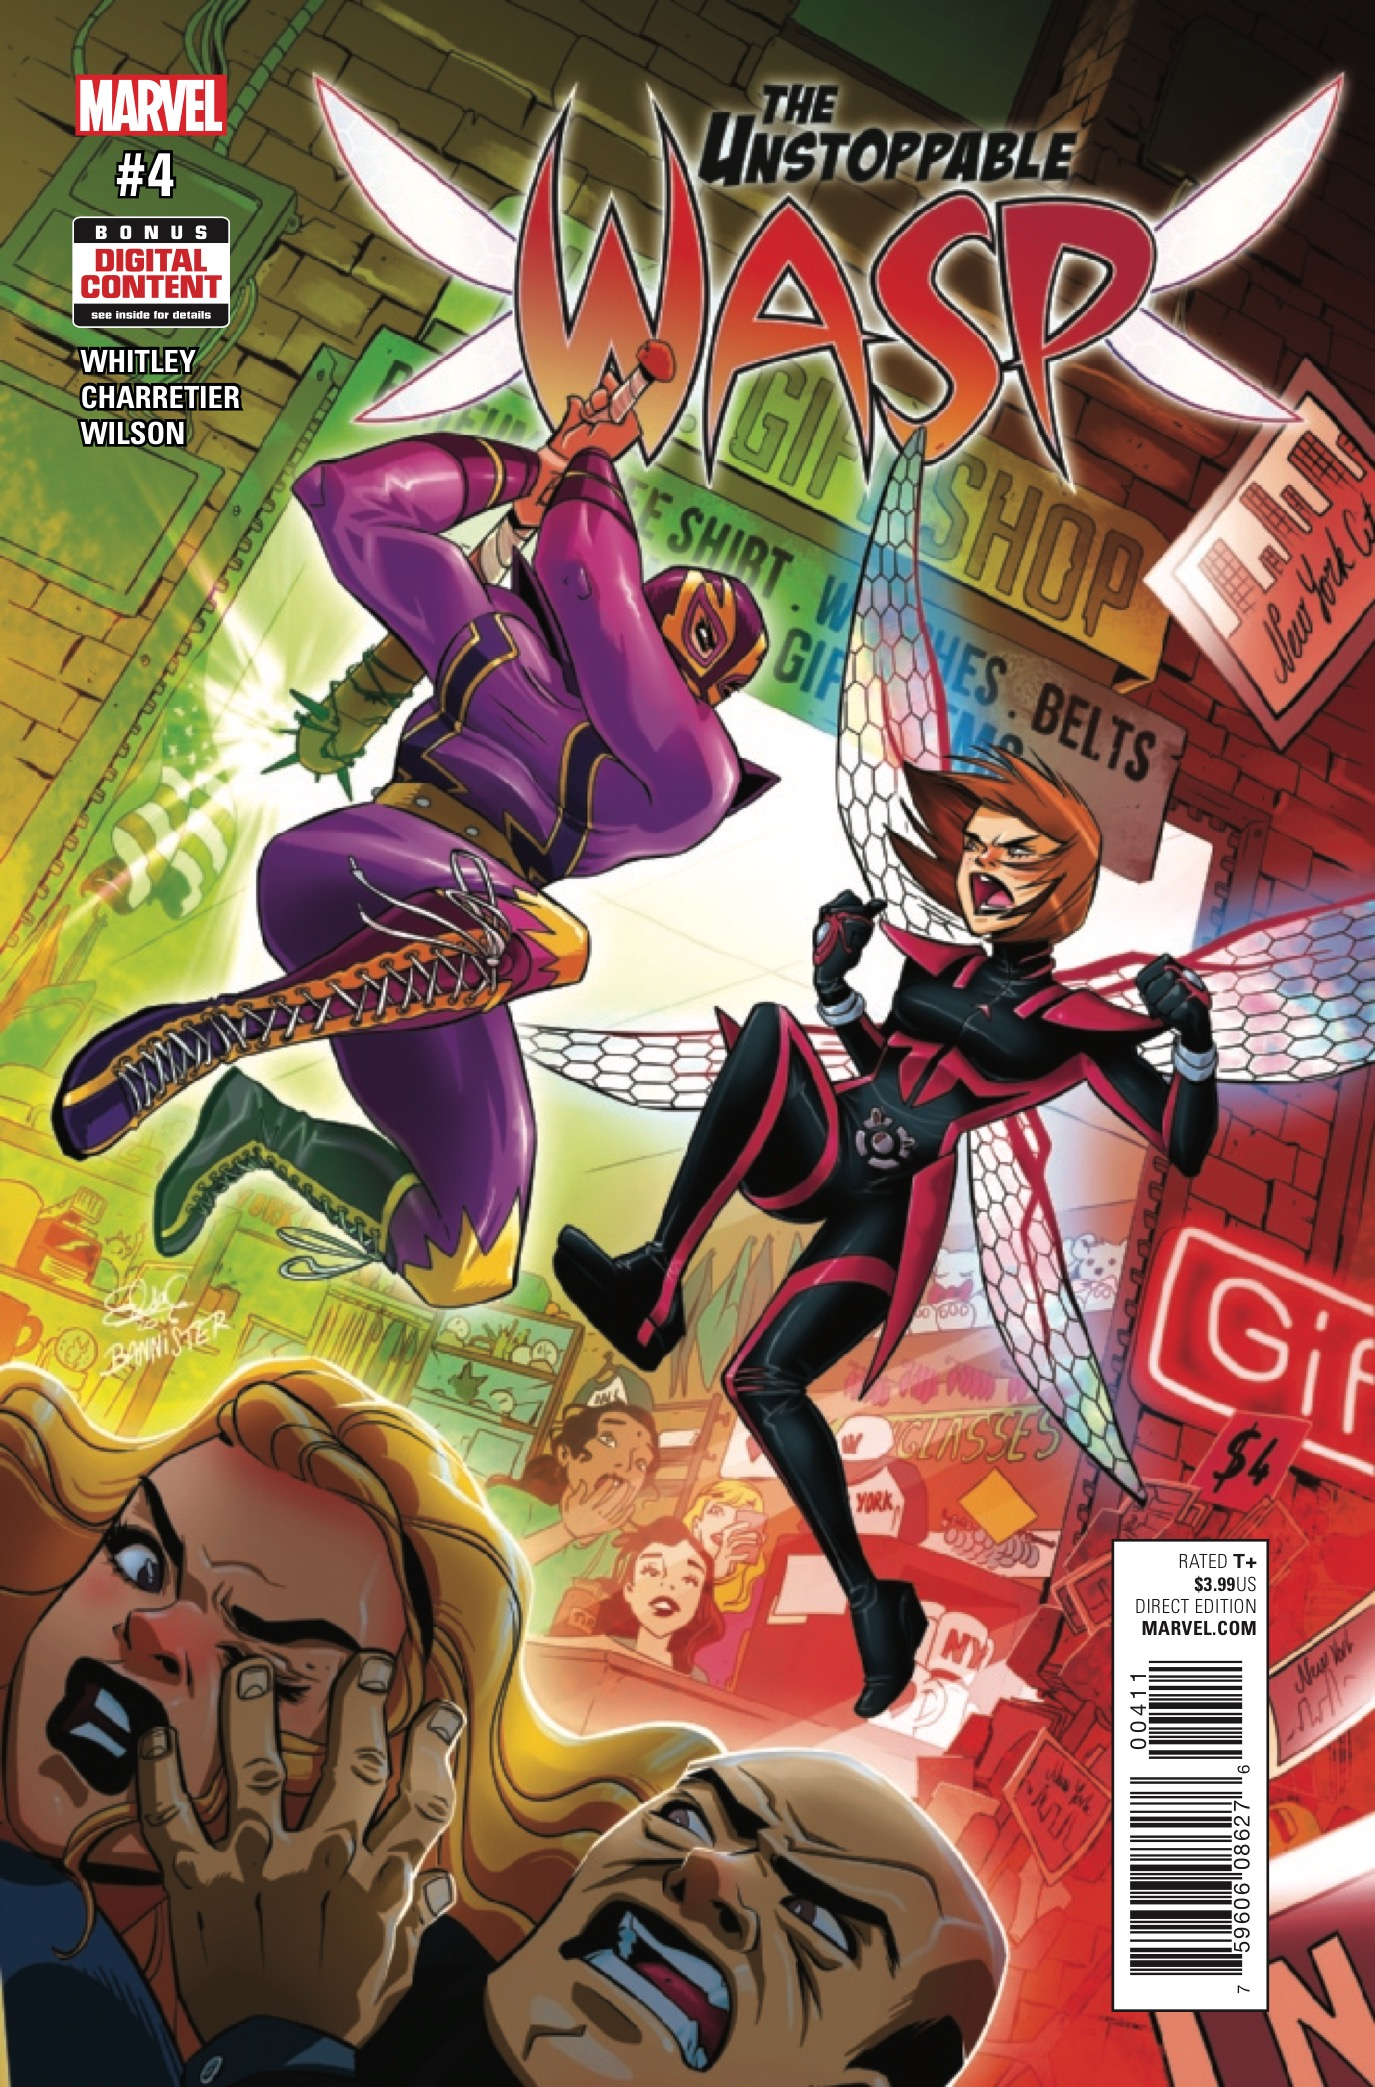 Marvel Preview: The Unstoppable Wasp #4